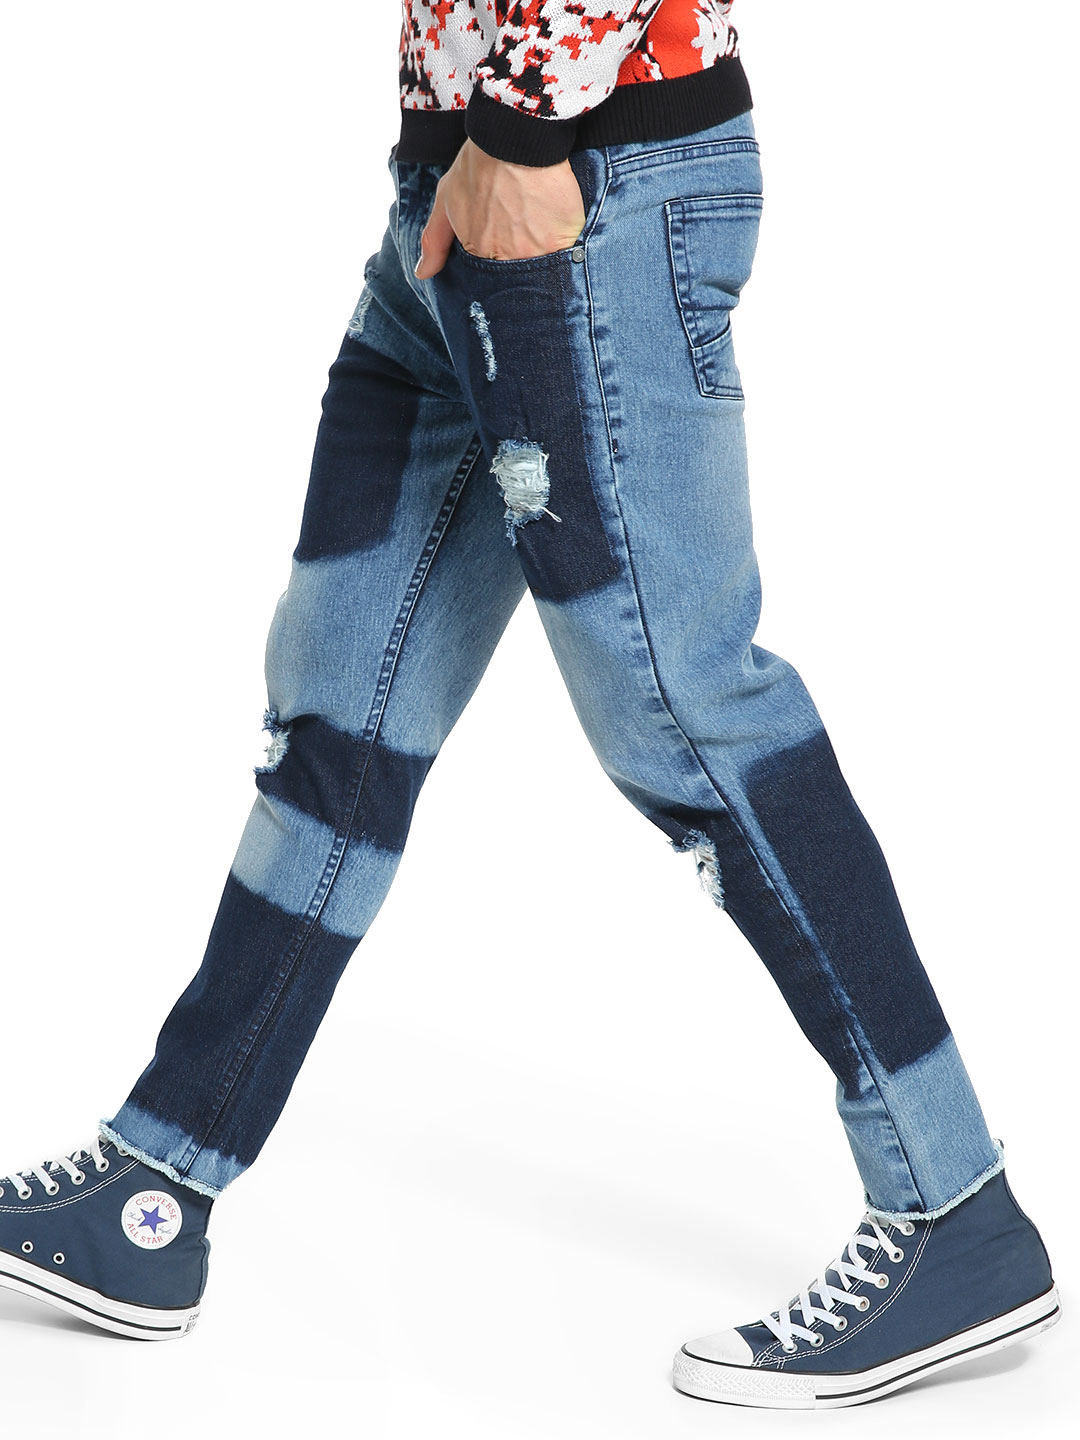 K Denim Blue KOOVS Two Tone Patch Slim Jeans 1